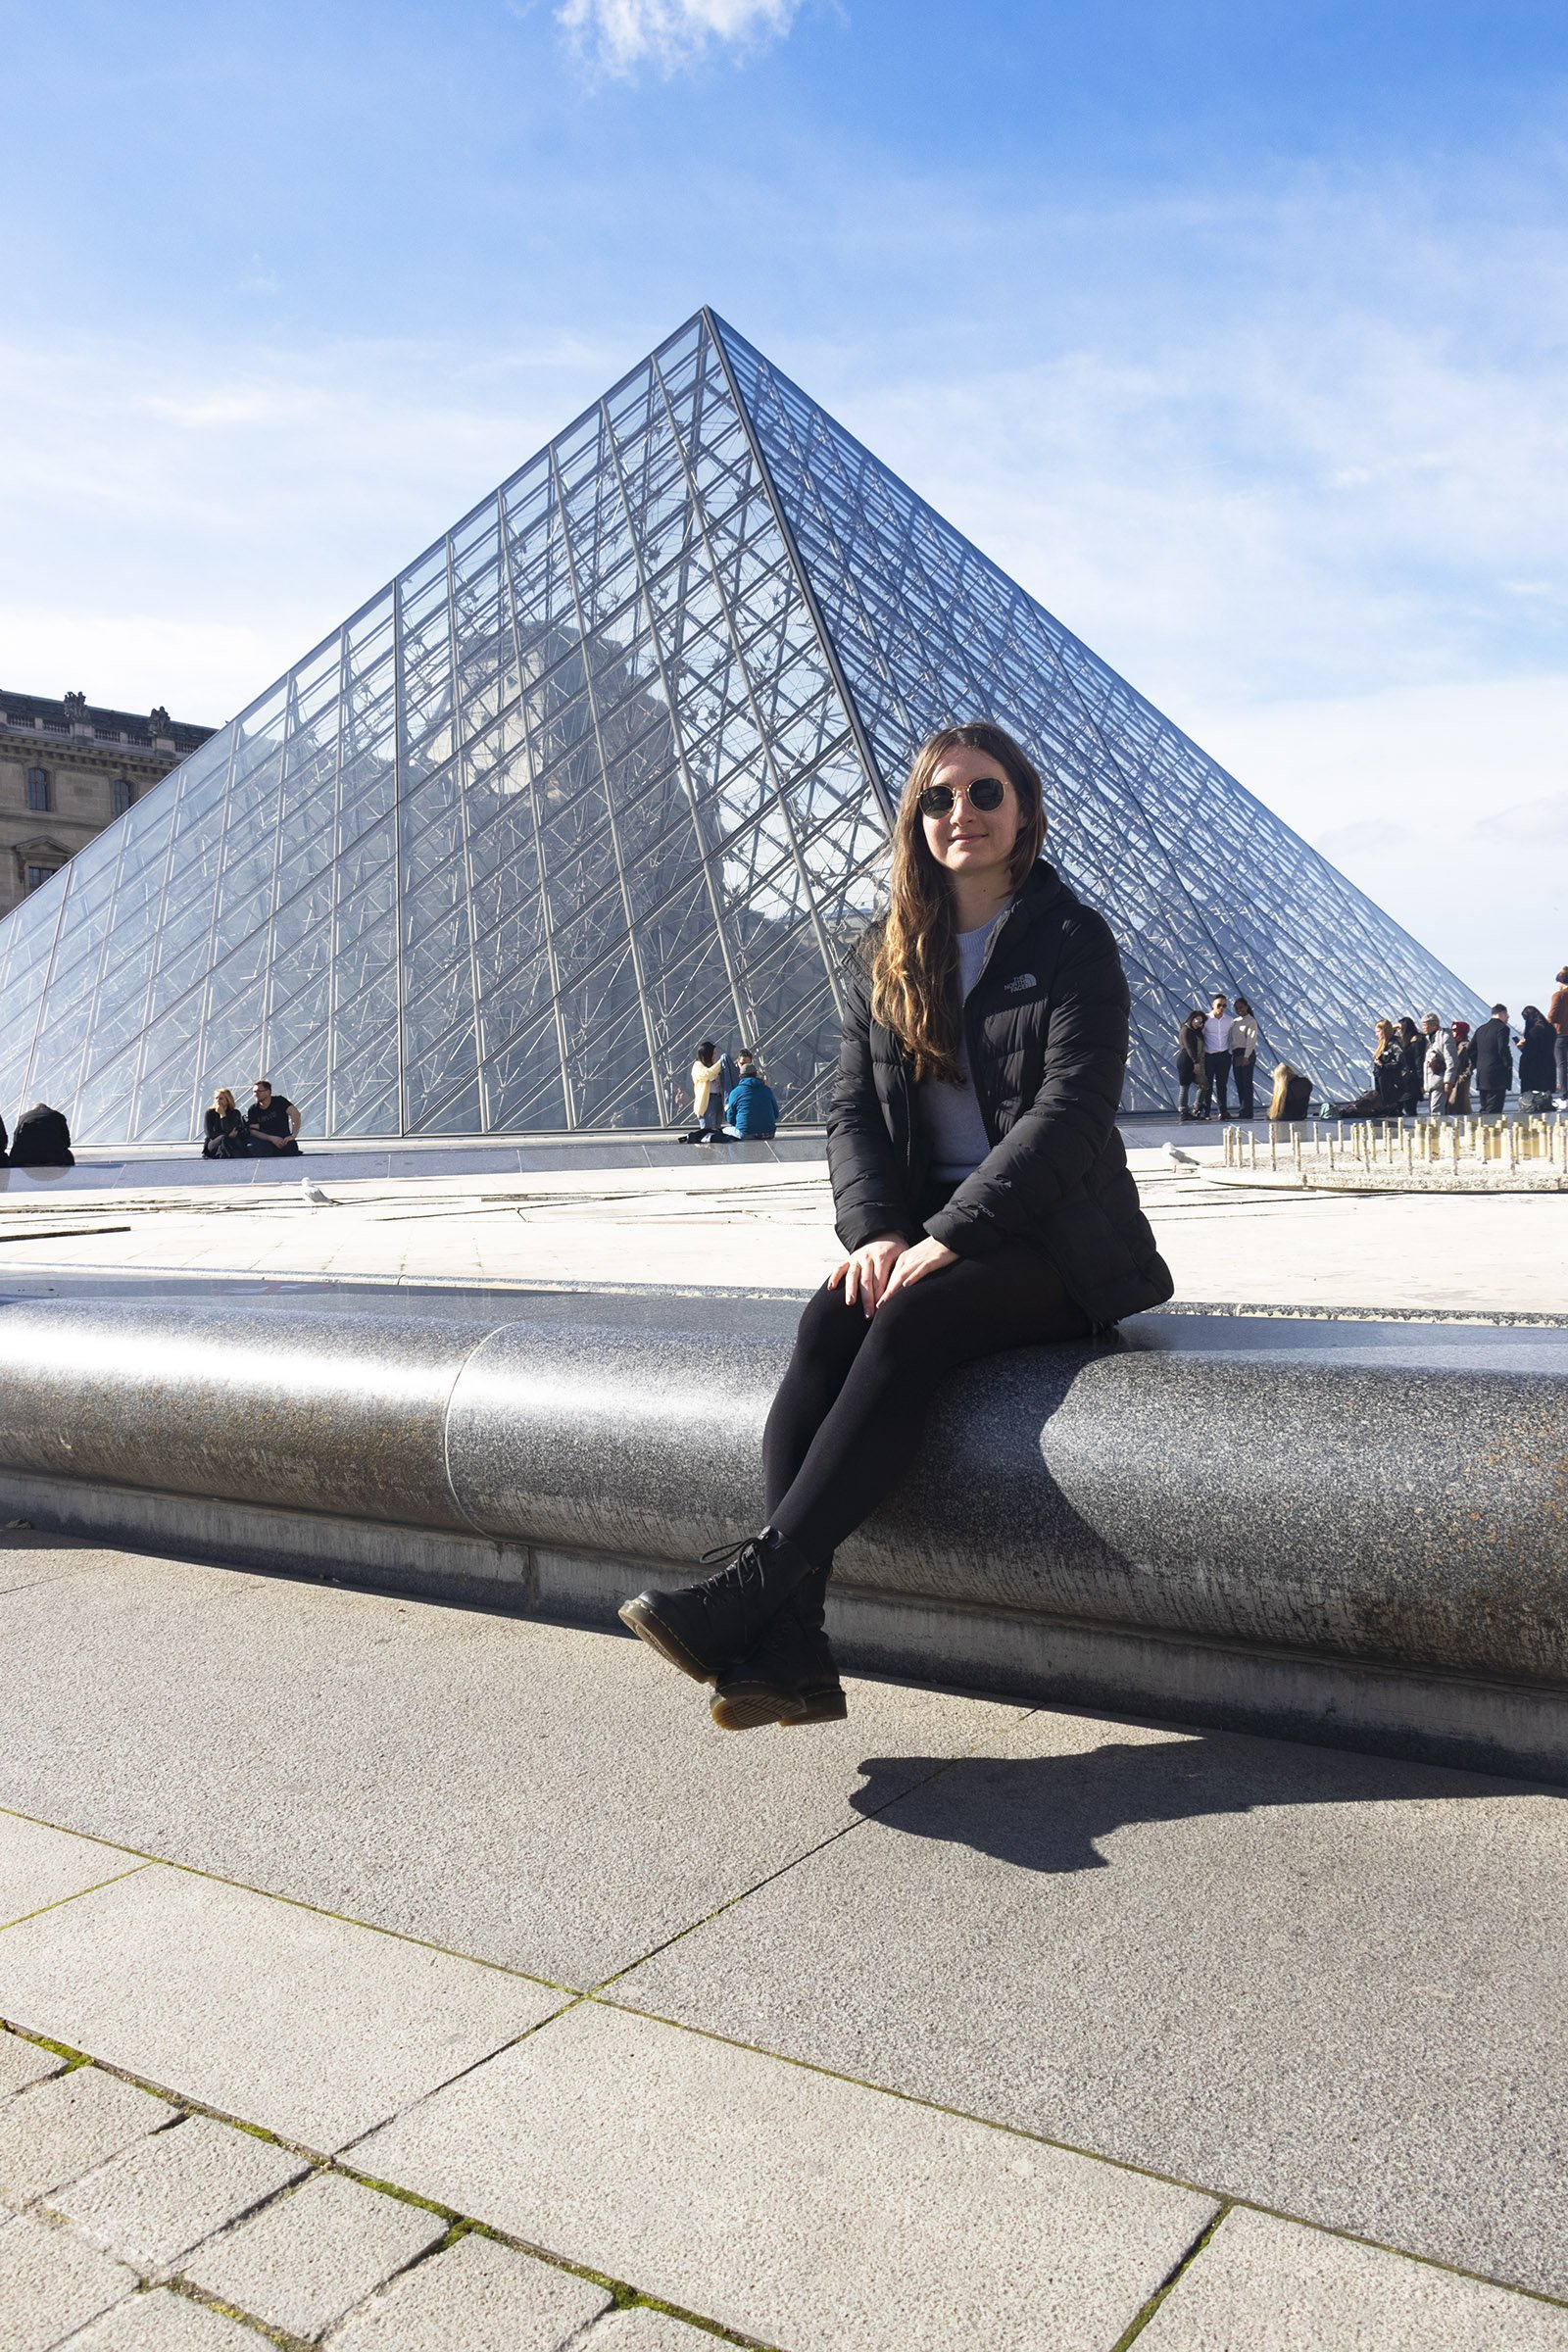 Sitting in front of Louvre pyramid